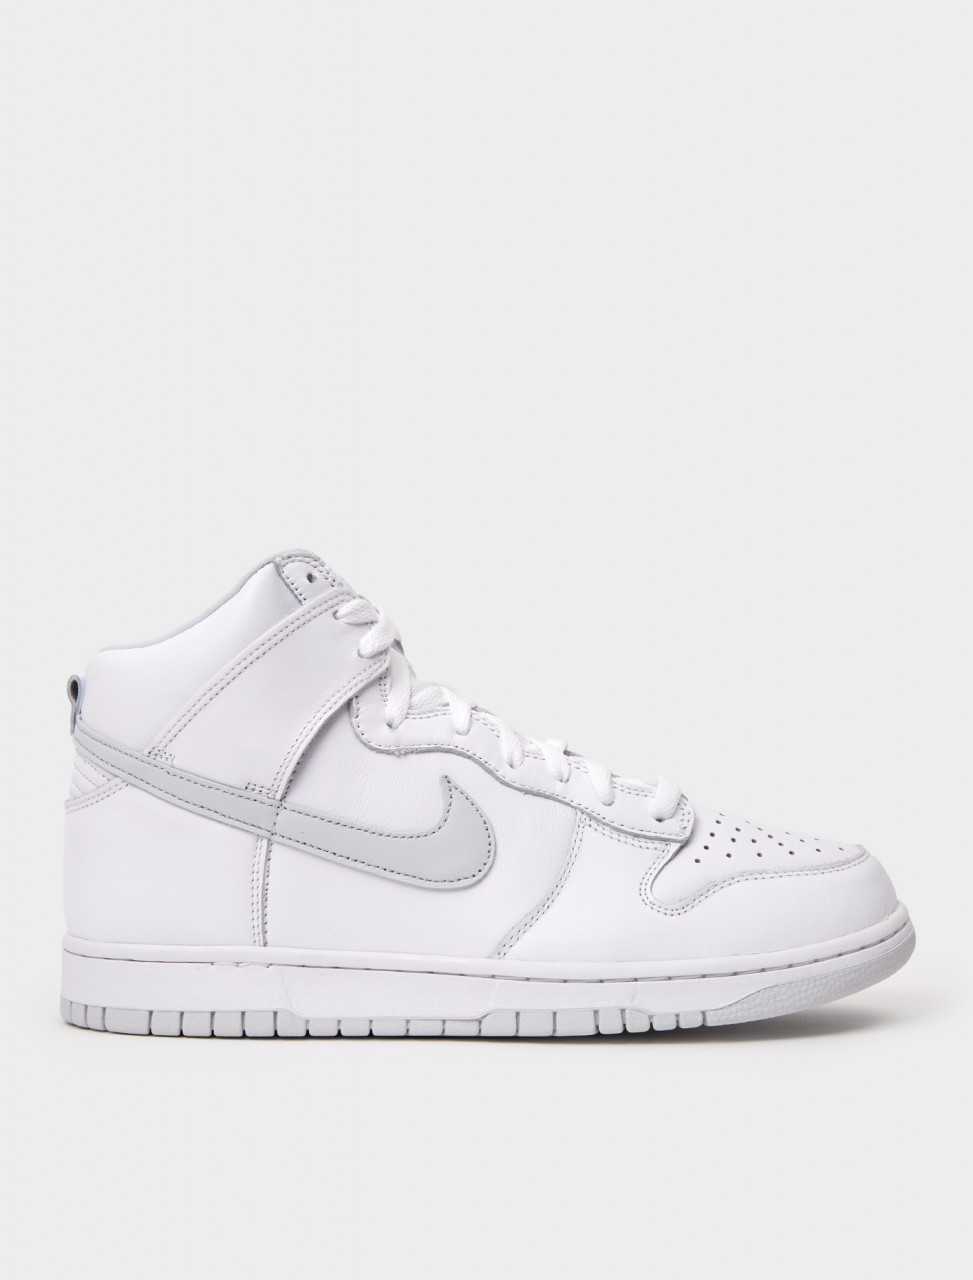 149-CZ8149-101 NIKE DUNK LOW HIGH WHITE PURE PLATINUM